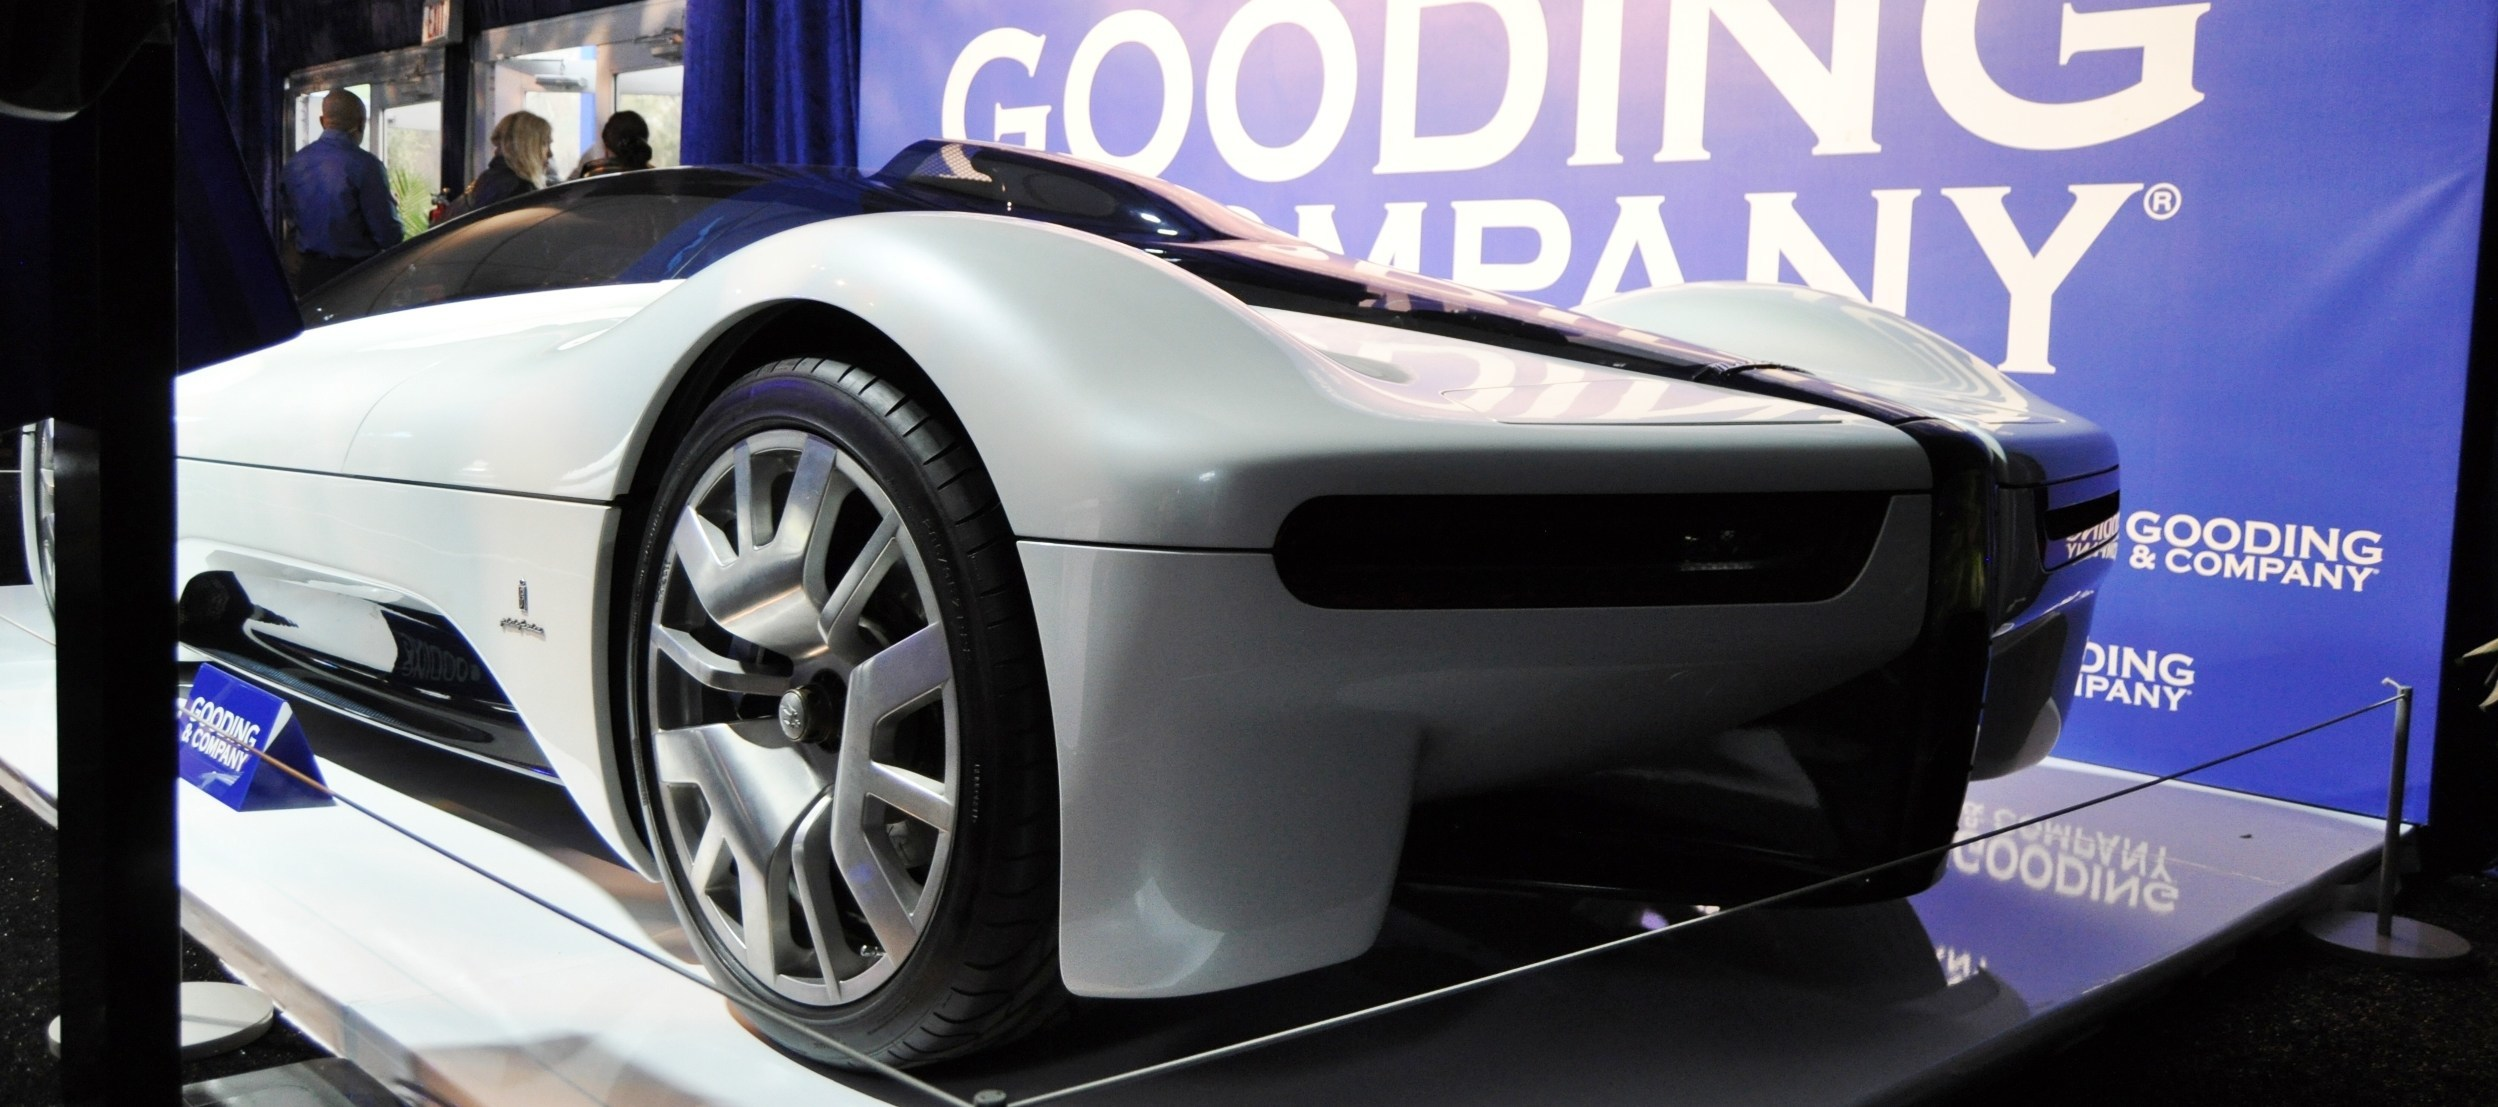 Gooding & Co. -- Amelia Island 2014 Gallery -- 2005 Maserati Birdcage 75th Concept 9